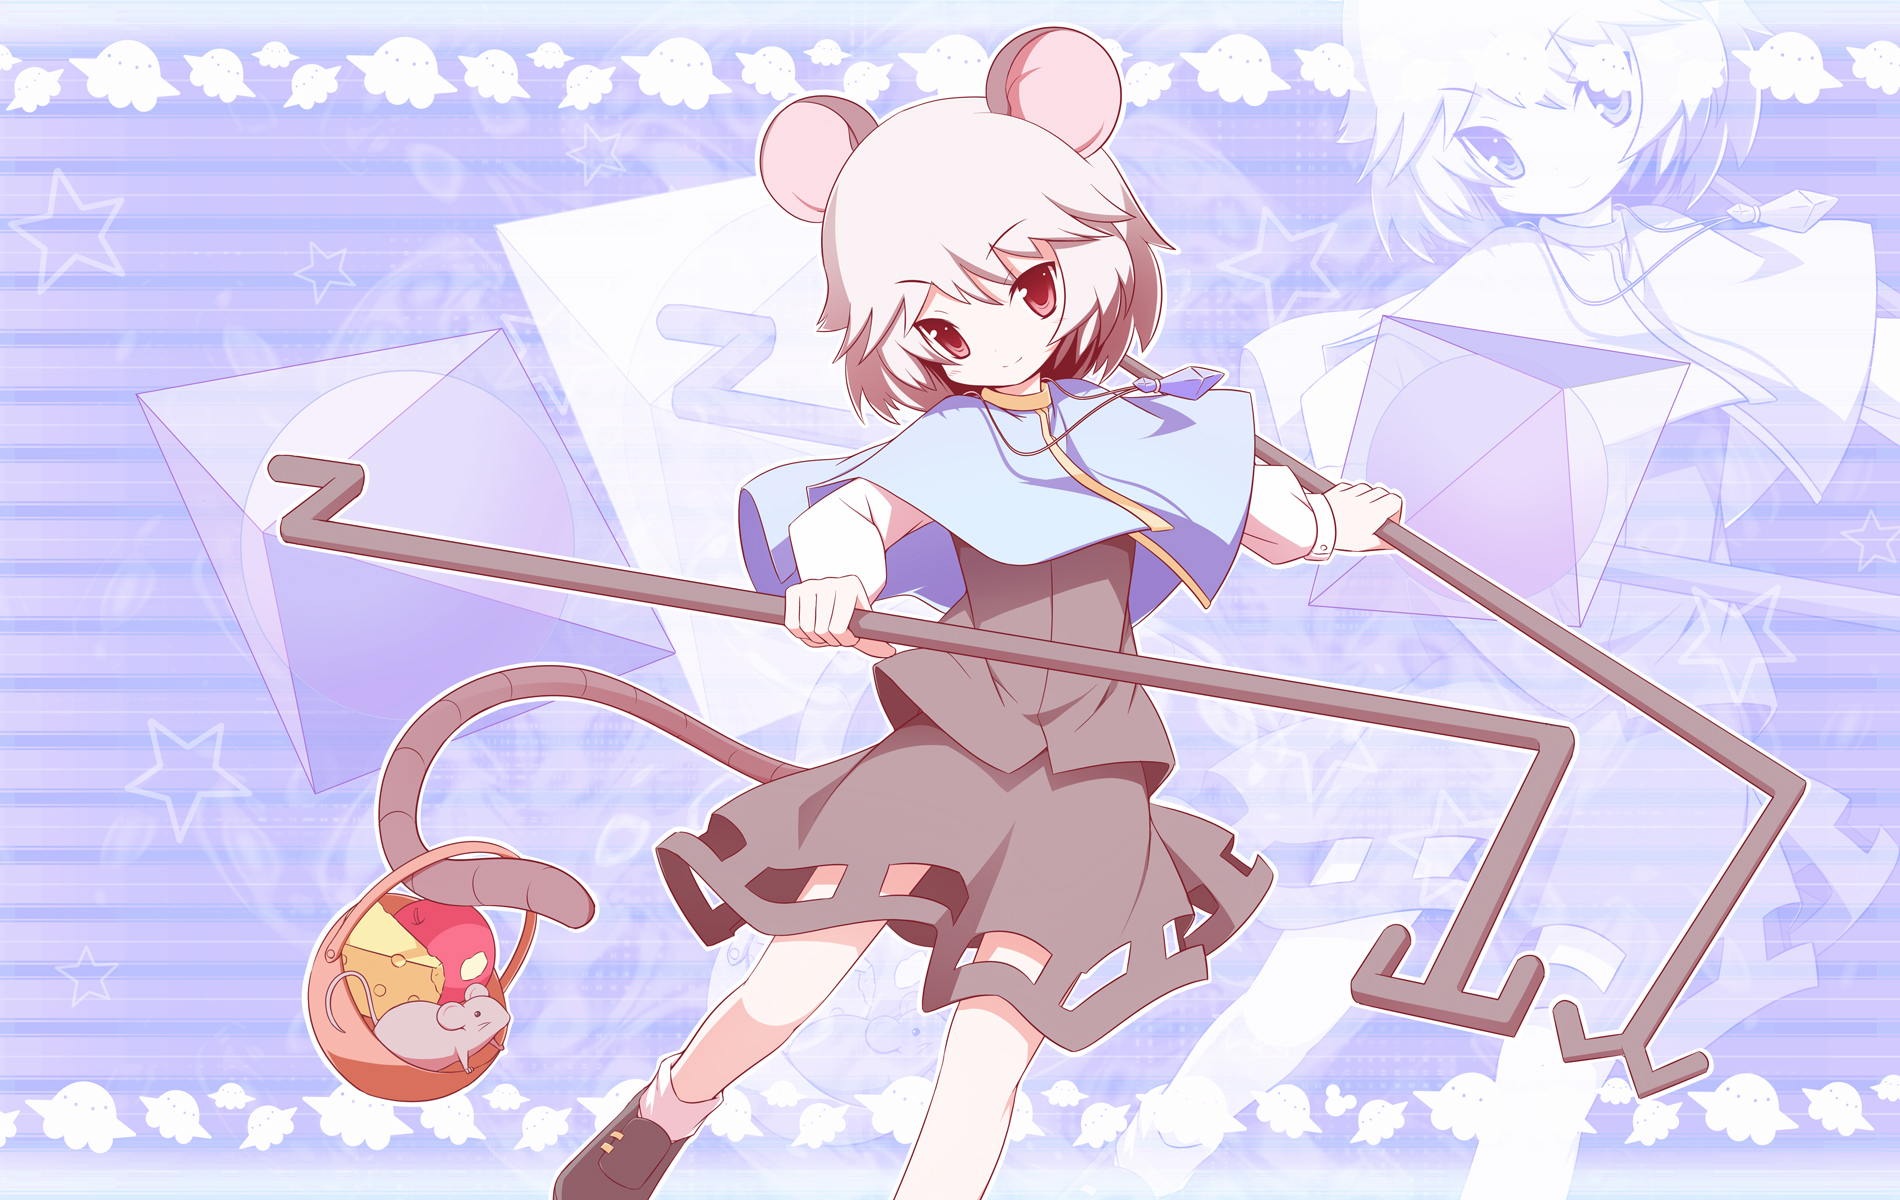 animal animal_ears gray_hair machily mouse mousegirl nazrin red_eyes short_hair skirt tail touhou weapon zoom_layer